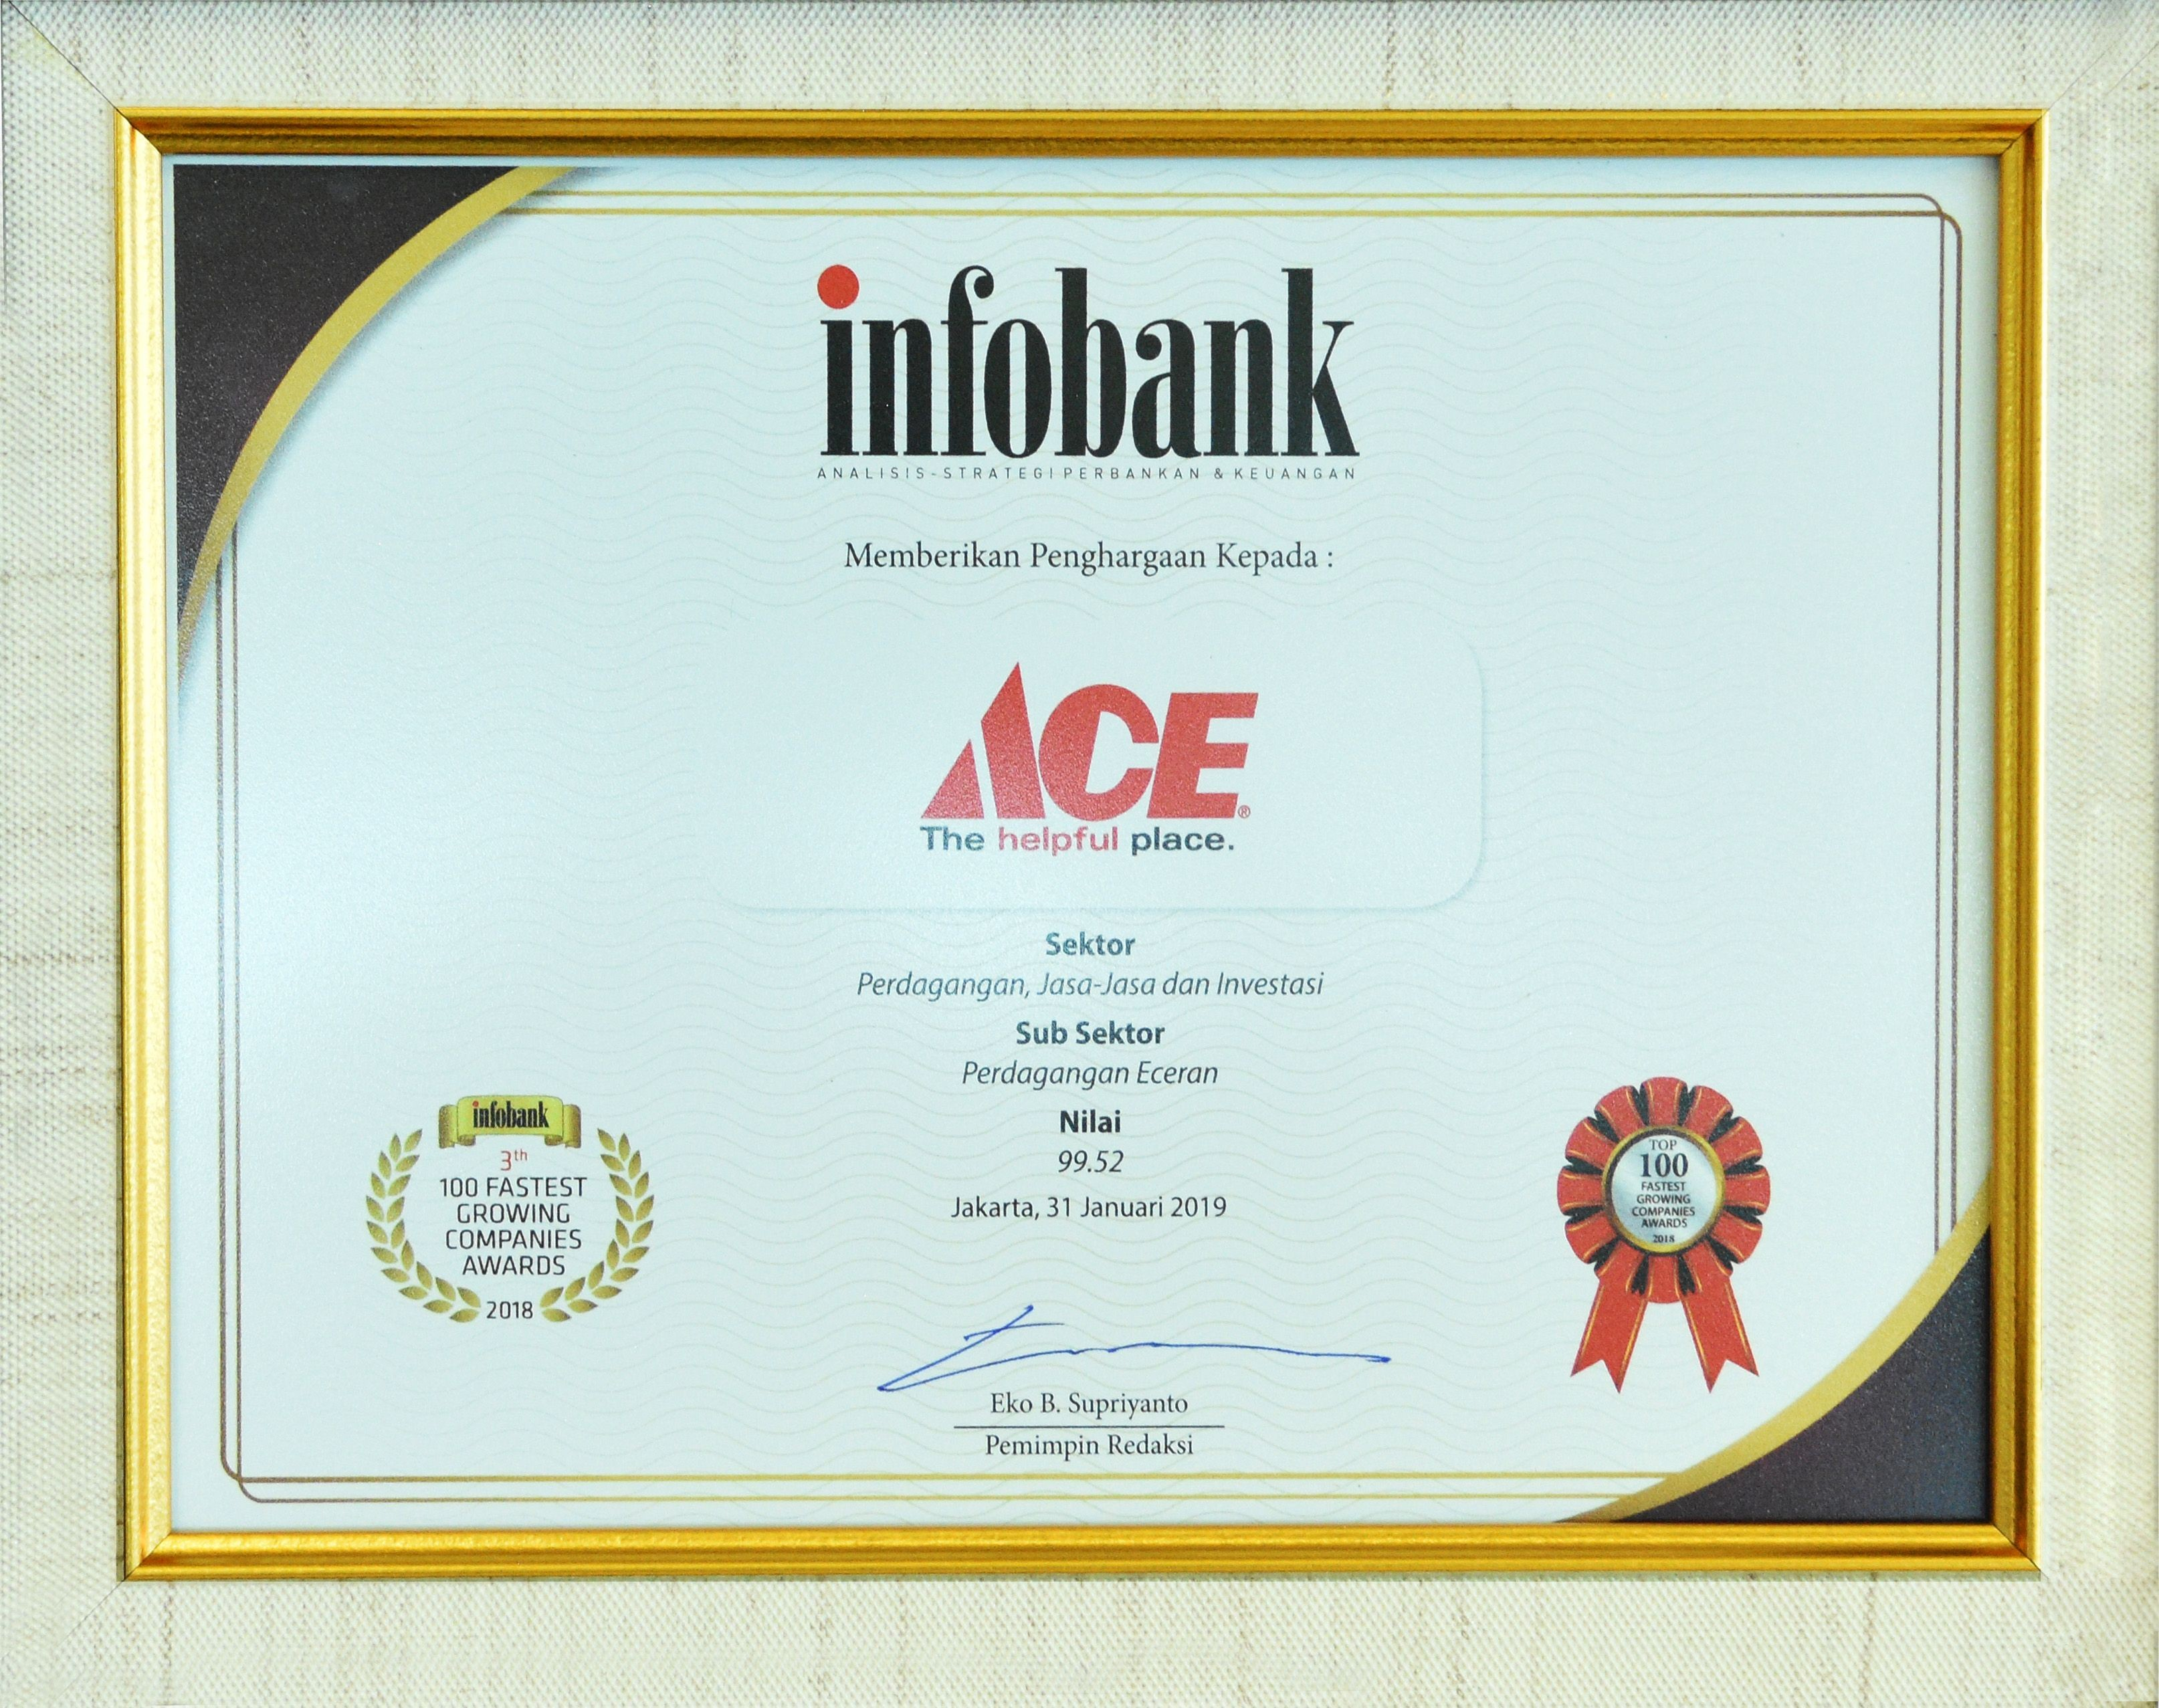 ACE begin 2019 by receiving another prestigious award from Infobank For the third times in a row since 2017 ACE were awarded the 100 Fastest Growing